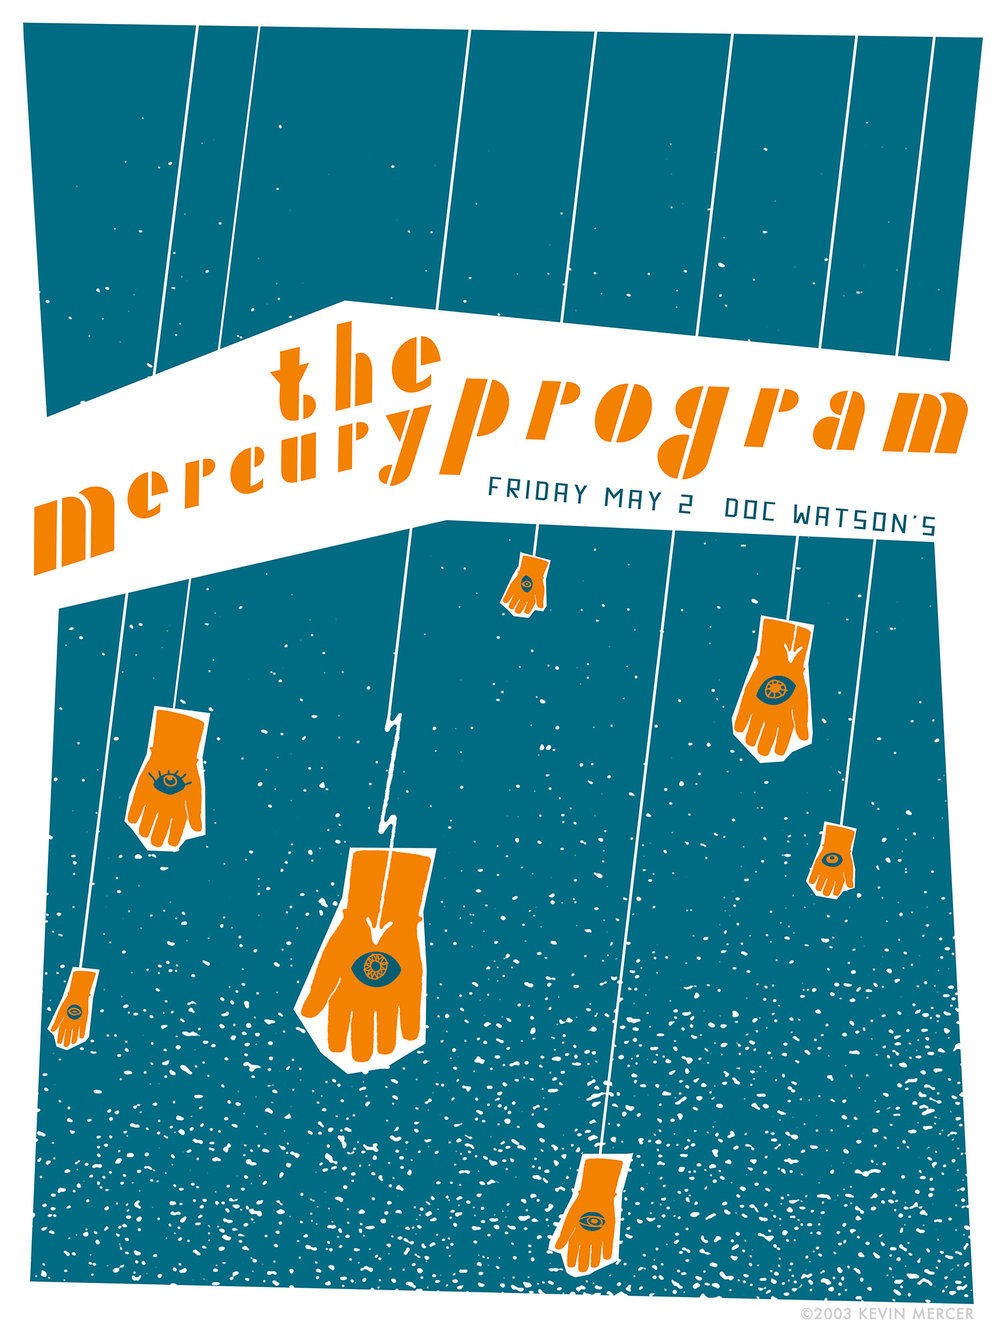 MercuryProgram2003-1500.jpg